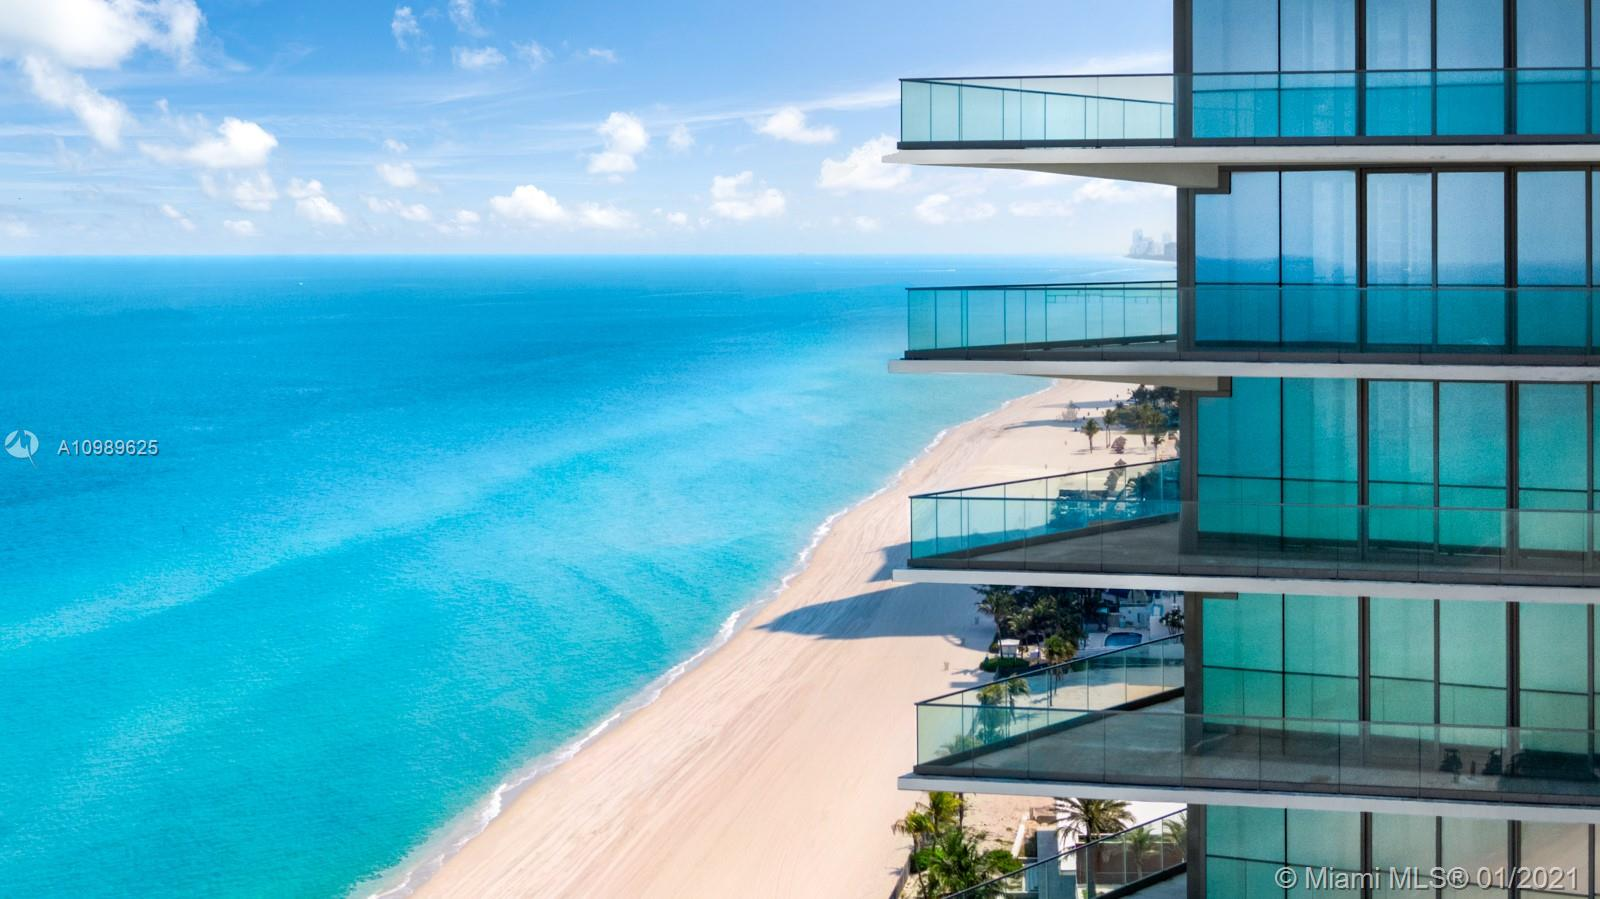 18975 Collins Ave, Unit #3700 *FINISHED* Luxury Real Estate